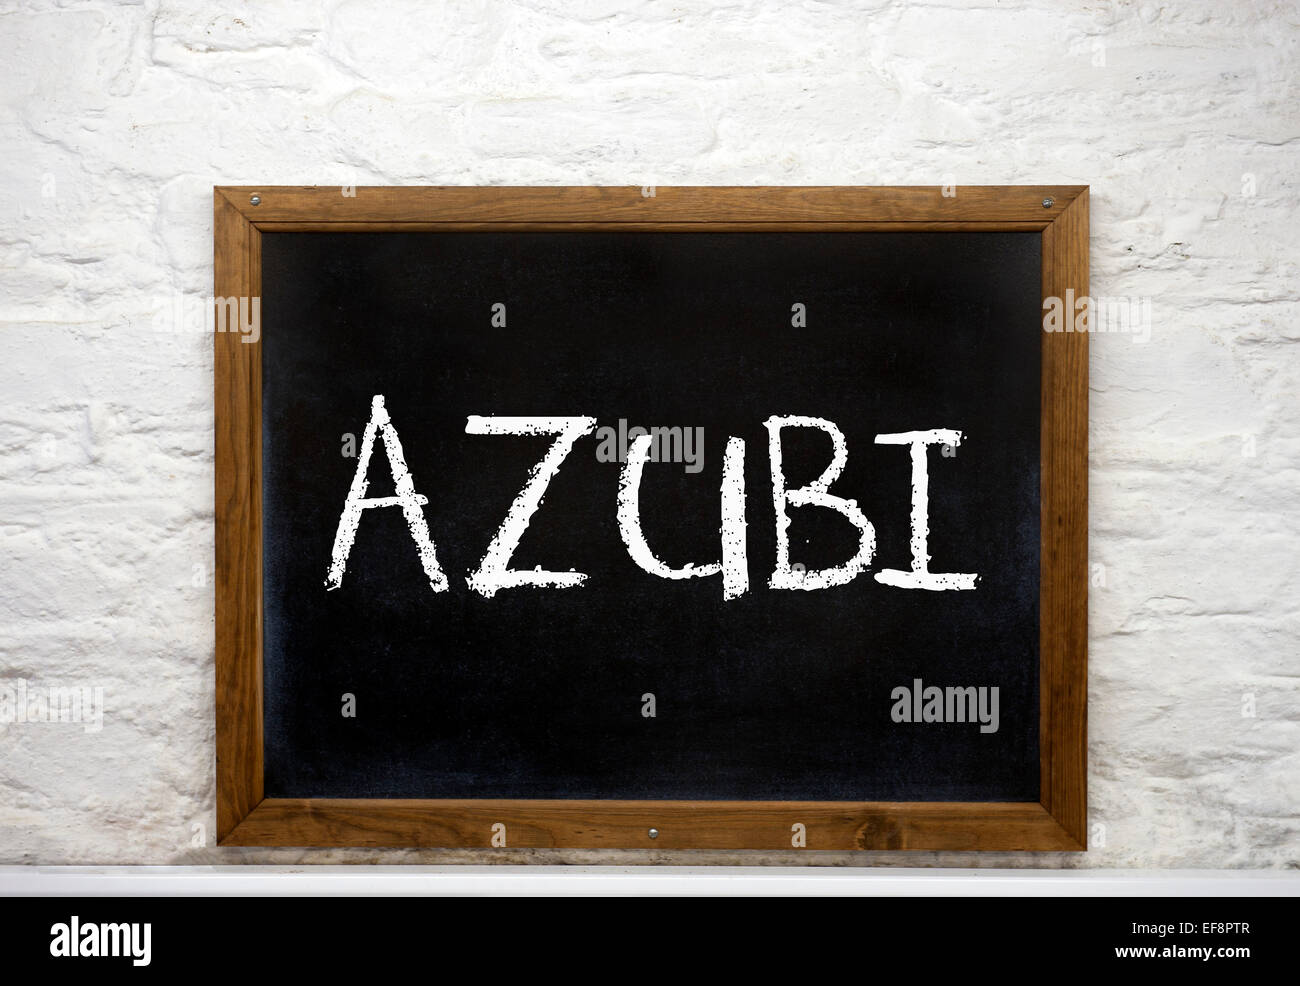 Chalkboard with the word 'Azubi', German for apprentice - Stock Image